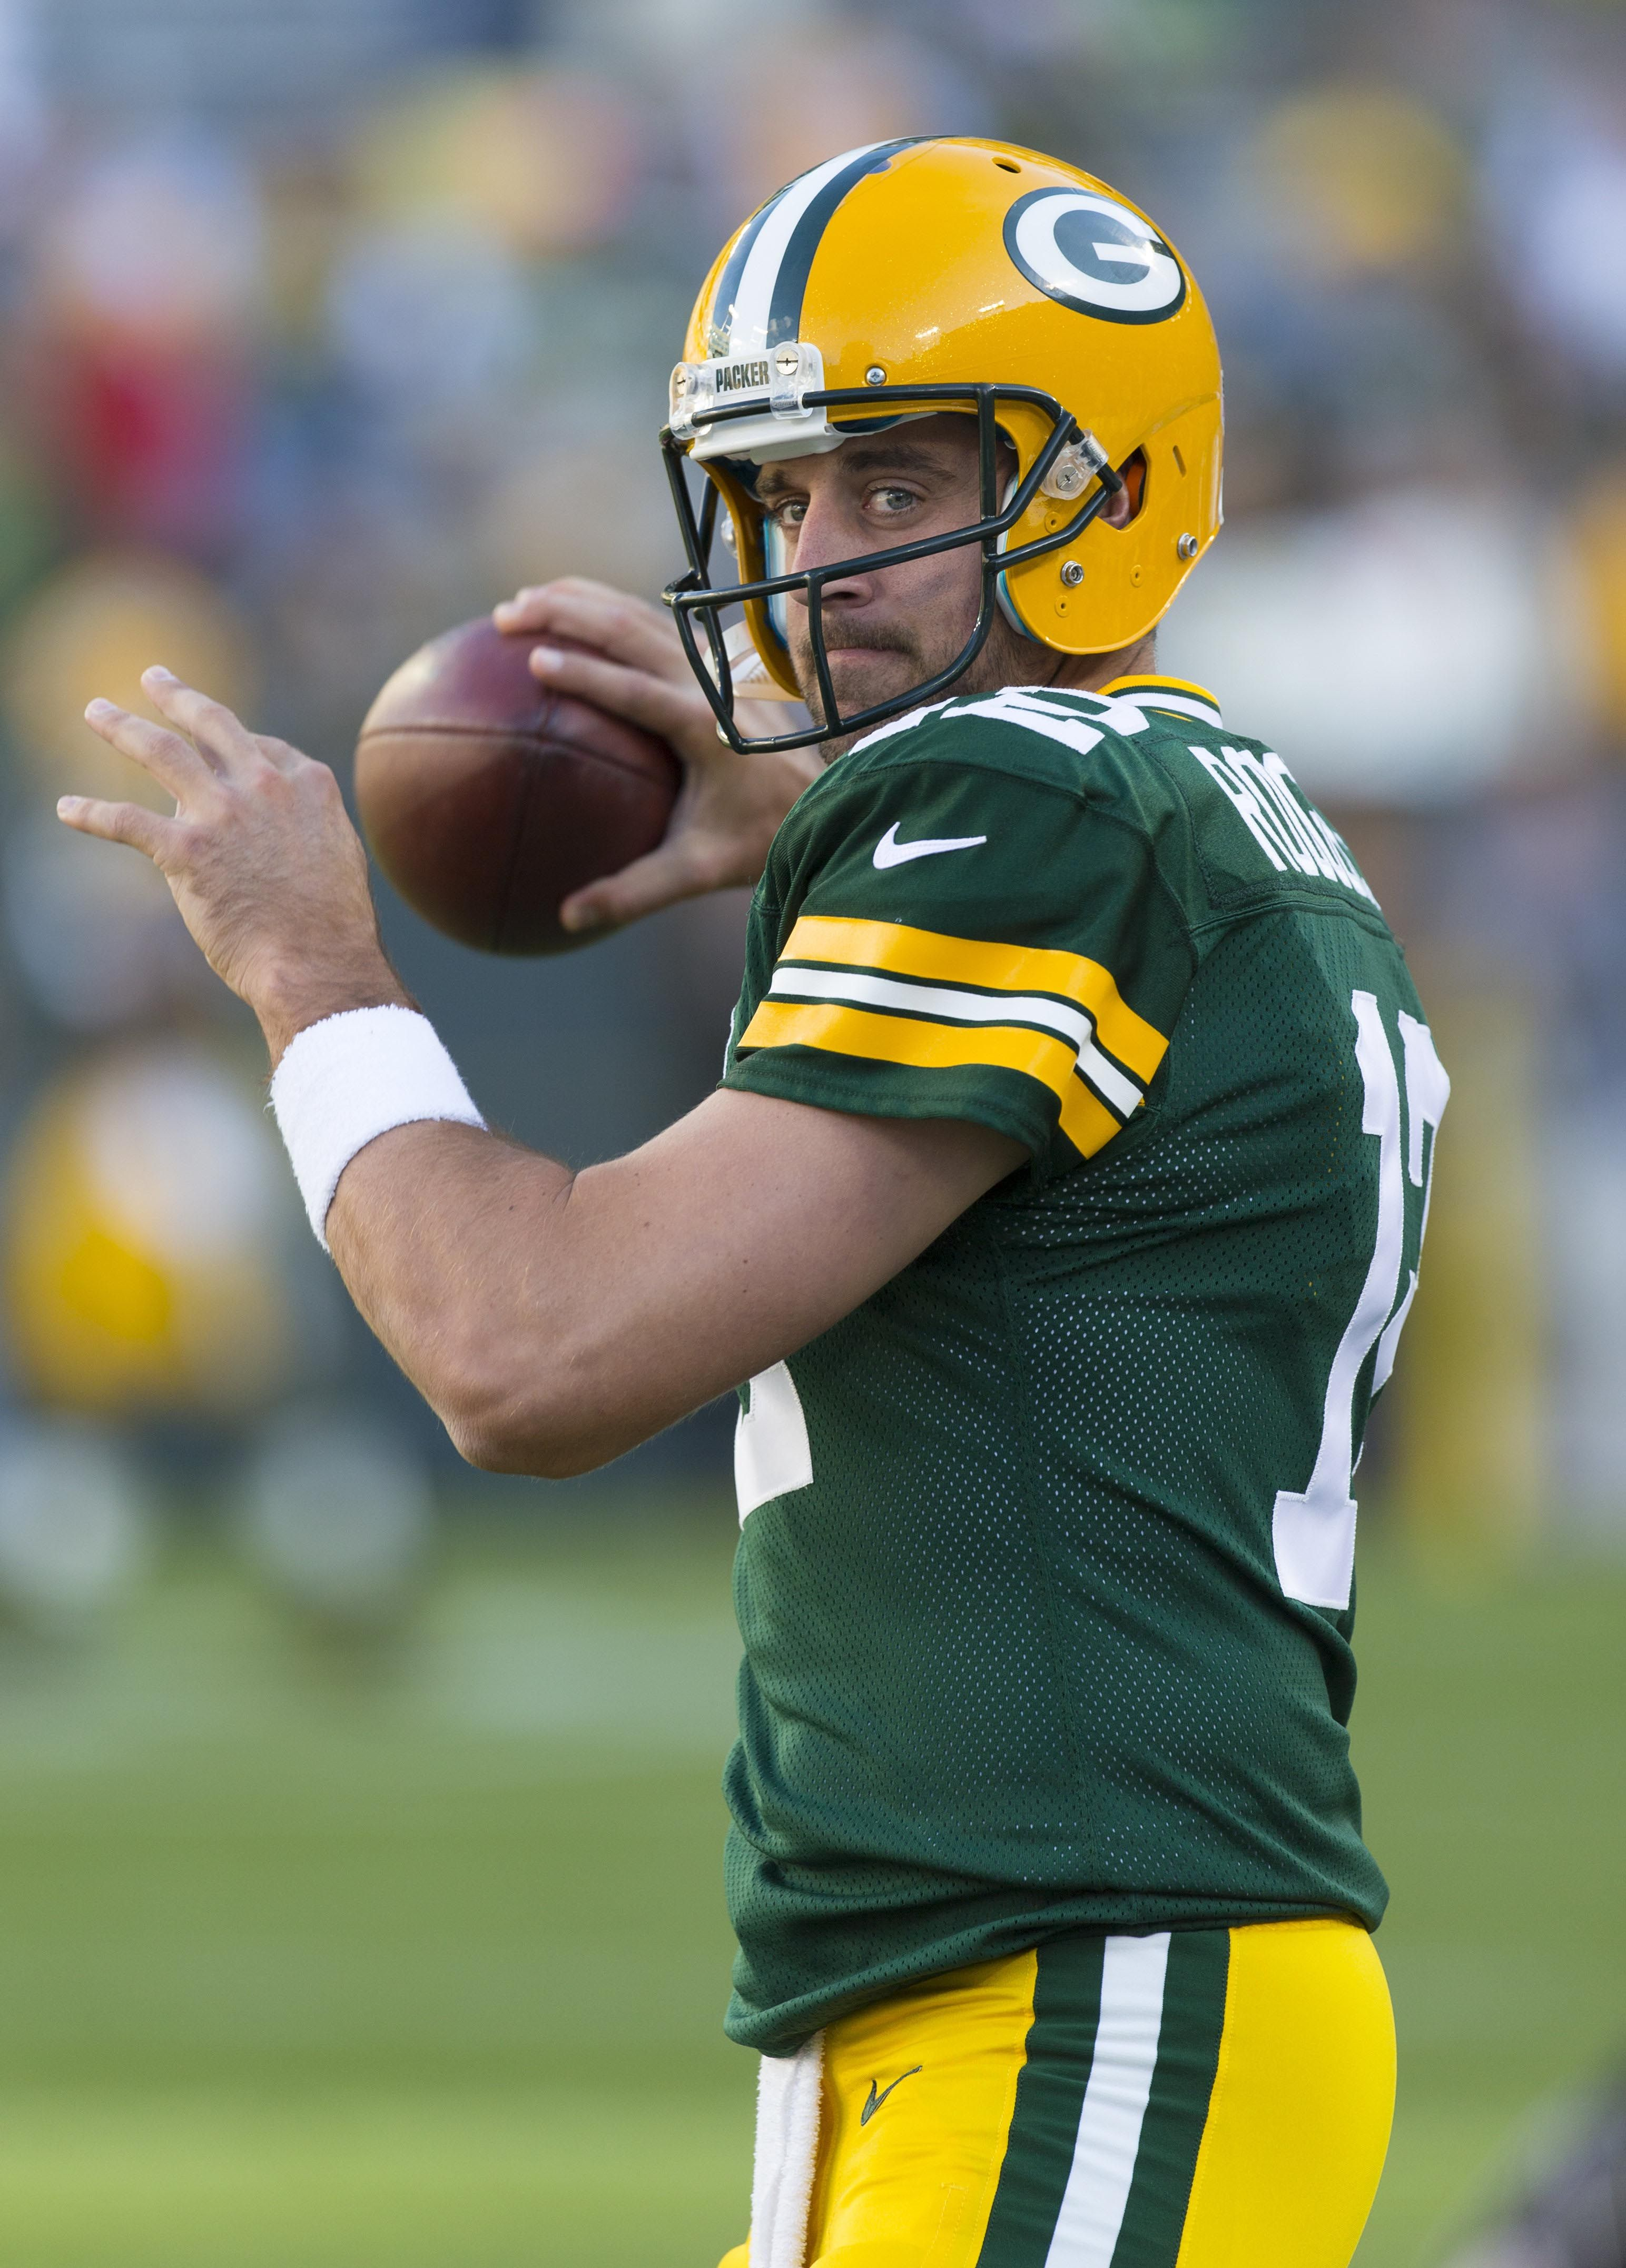 Green Bay Packers Quarterback Aaron Rodgers Throws A Pass During Warmups Prior To The Game Against T Green Bay Packers Team Green Bay Packers Arizona Cardinals